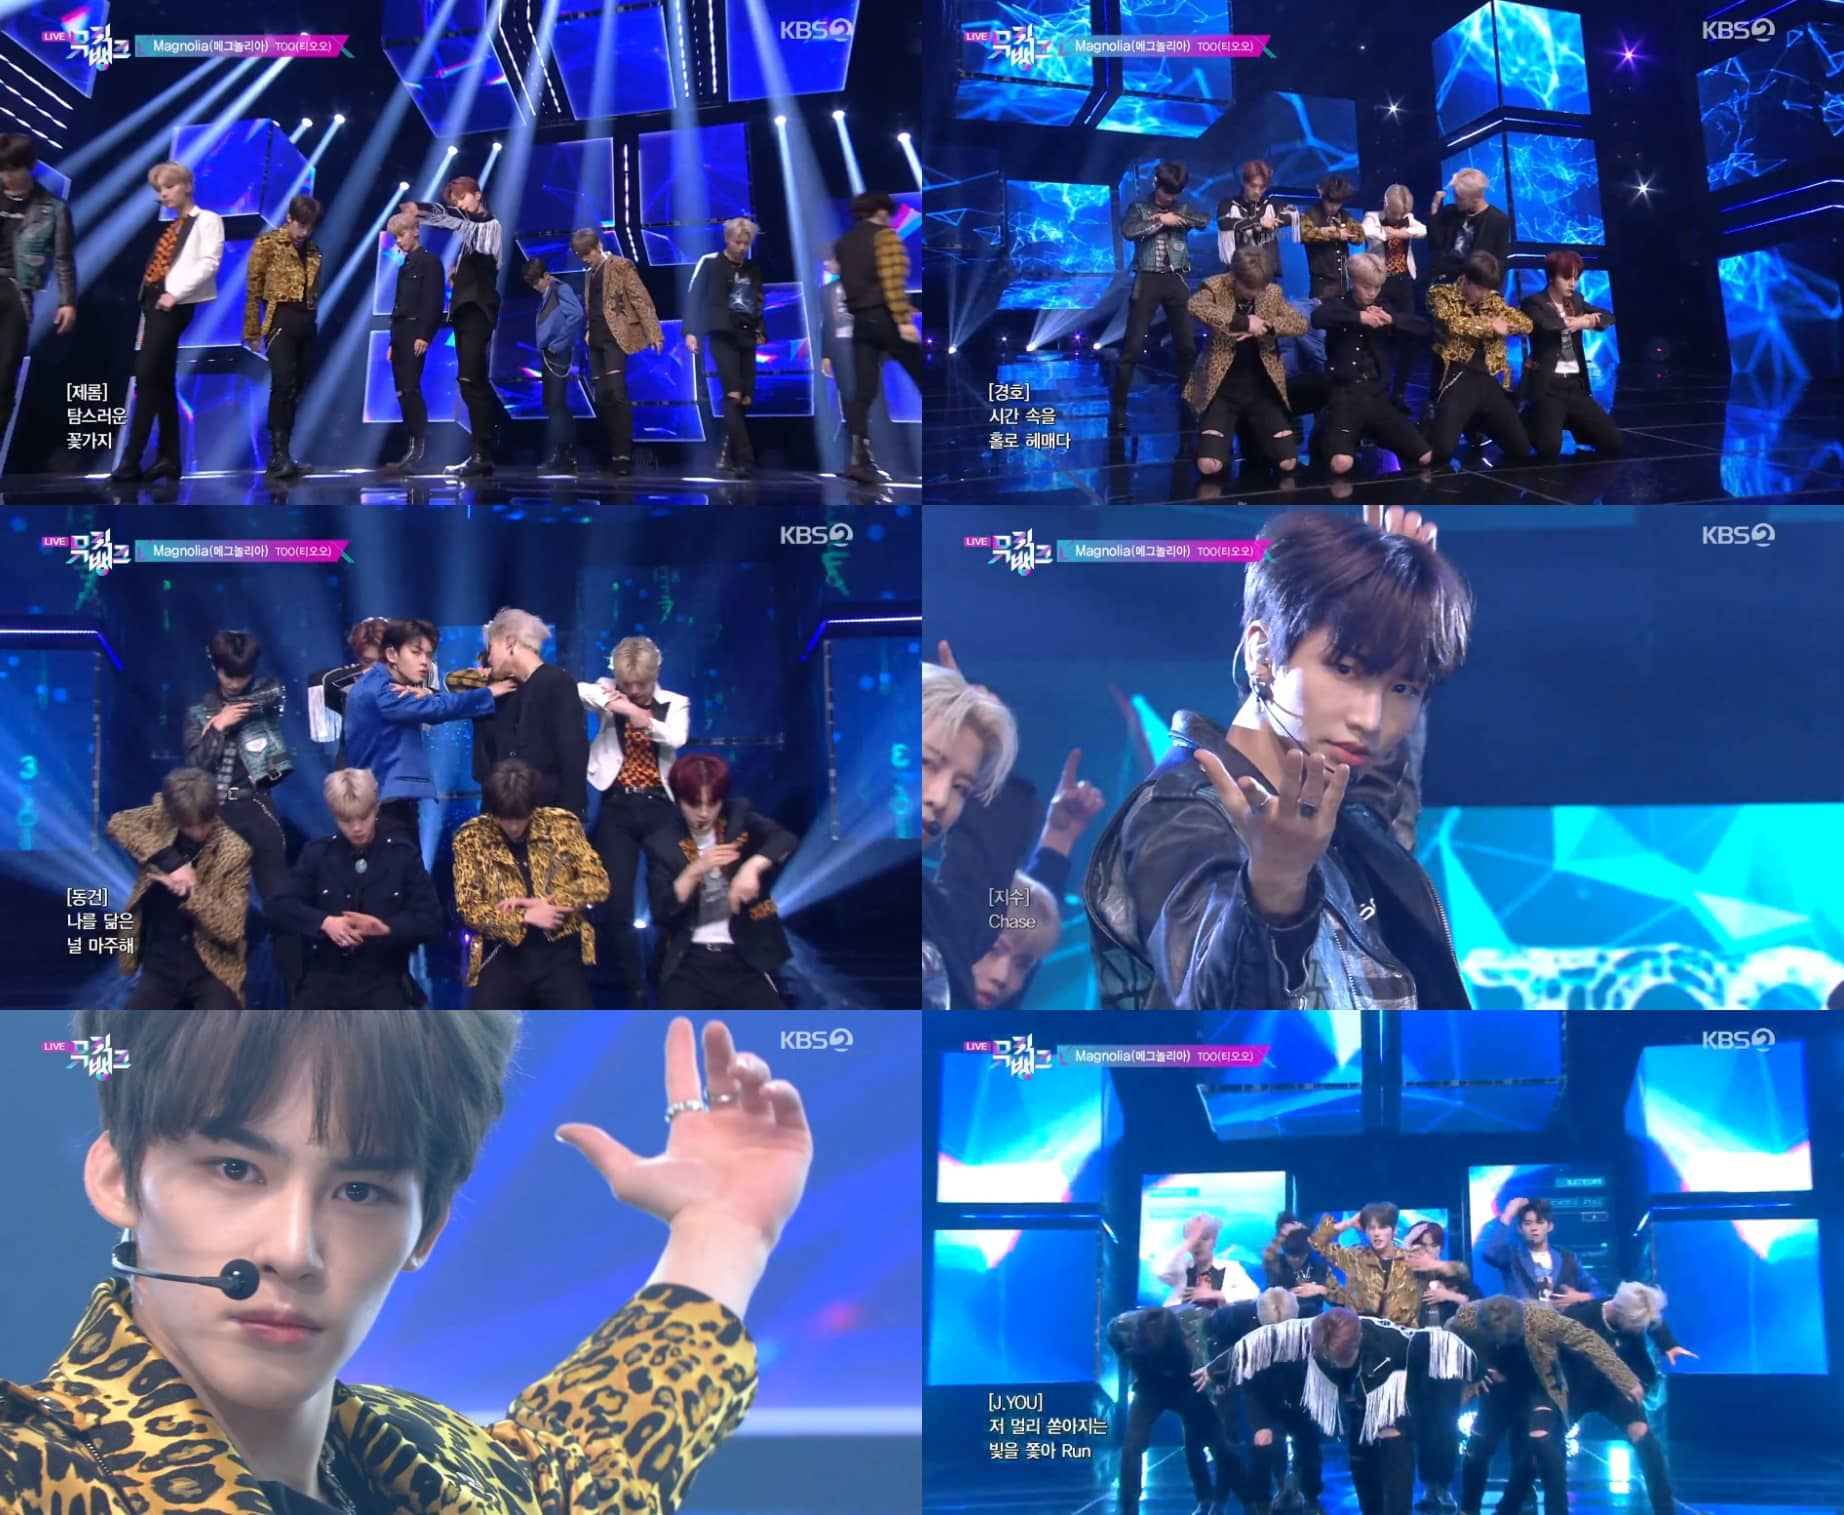 TOO shows fantastic performance unlike a rookie and shakes hearts of many on 'Music Bank'